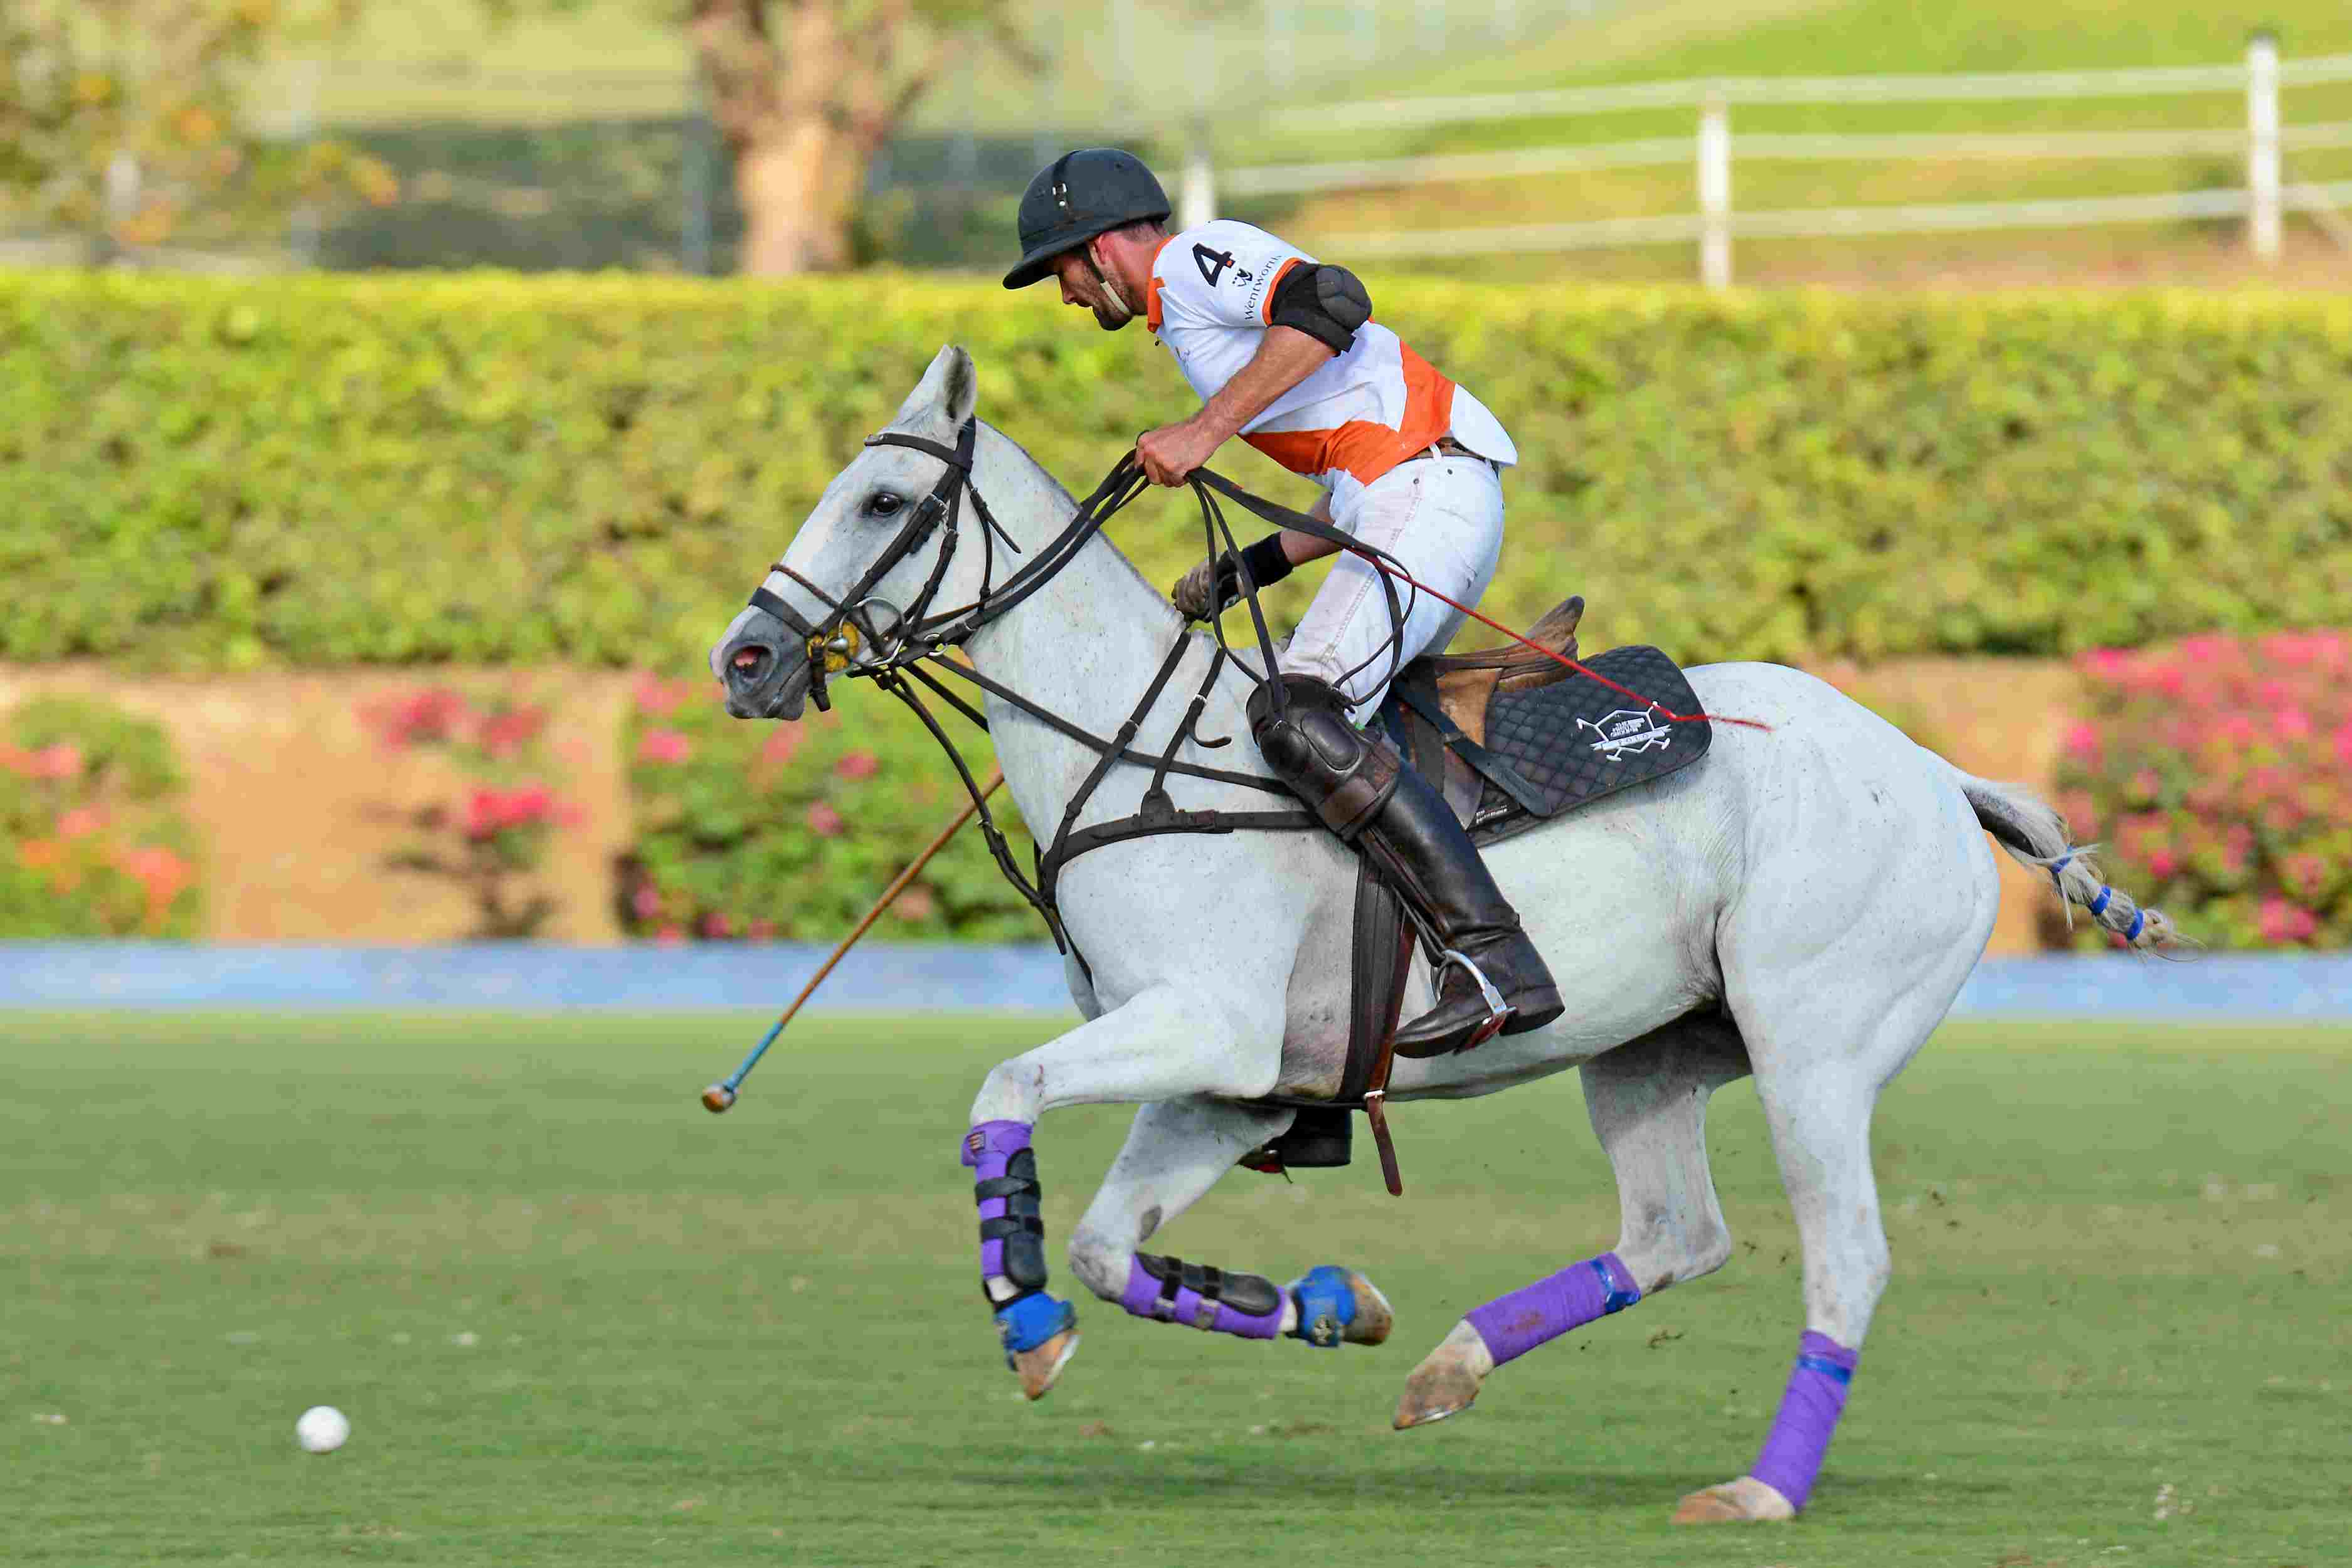 a person playing polo